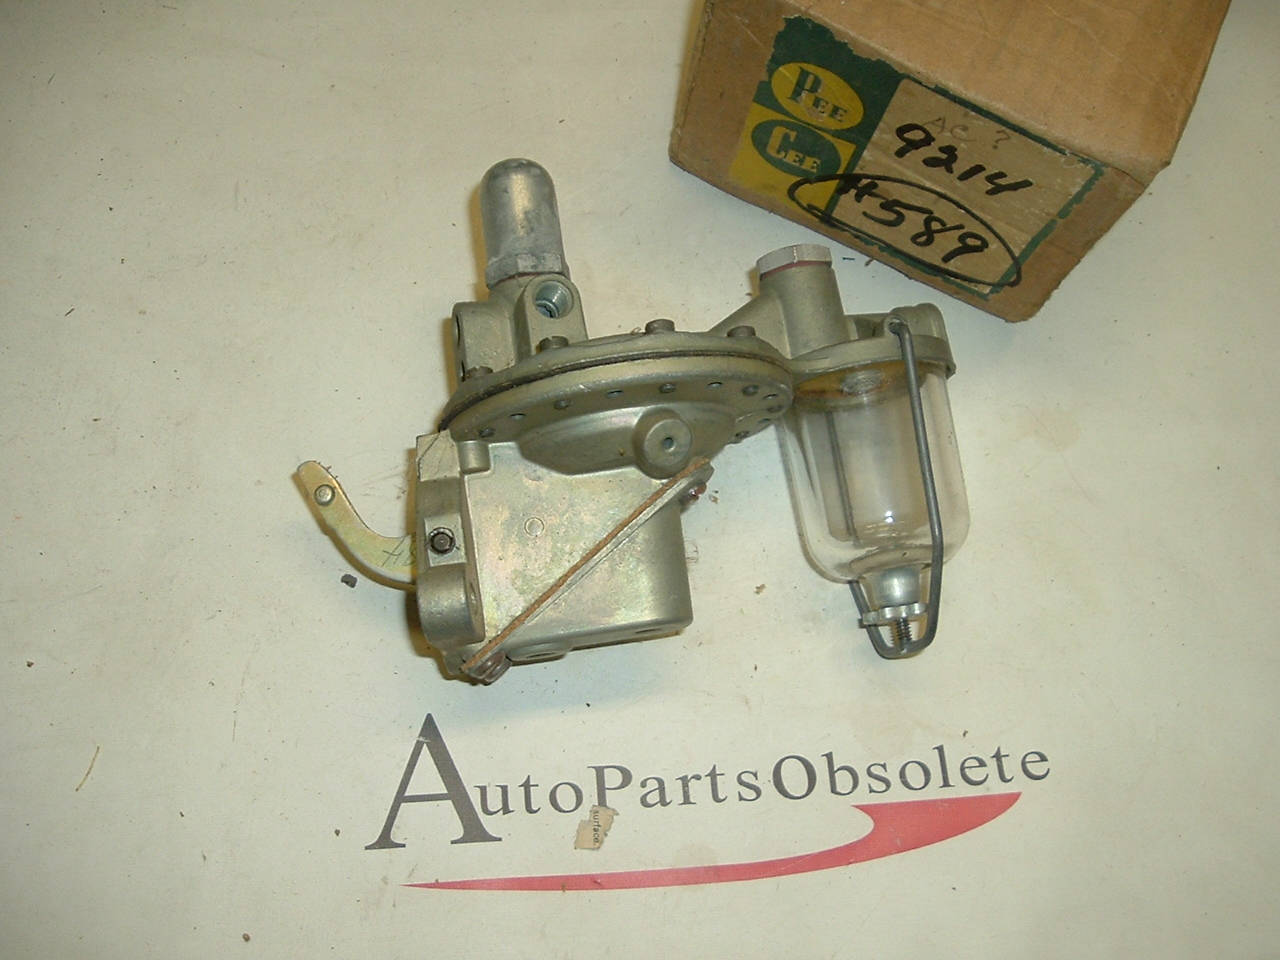 1941 - 50 Dodge truck fuel pump #589 (a 589)